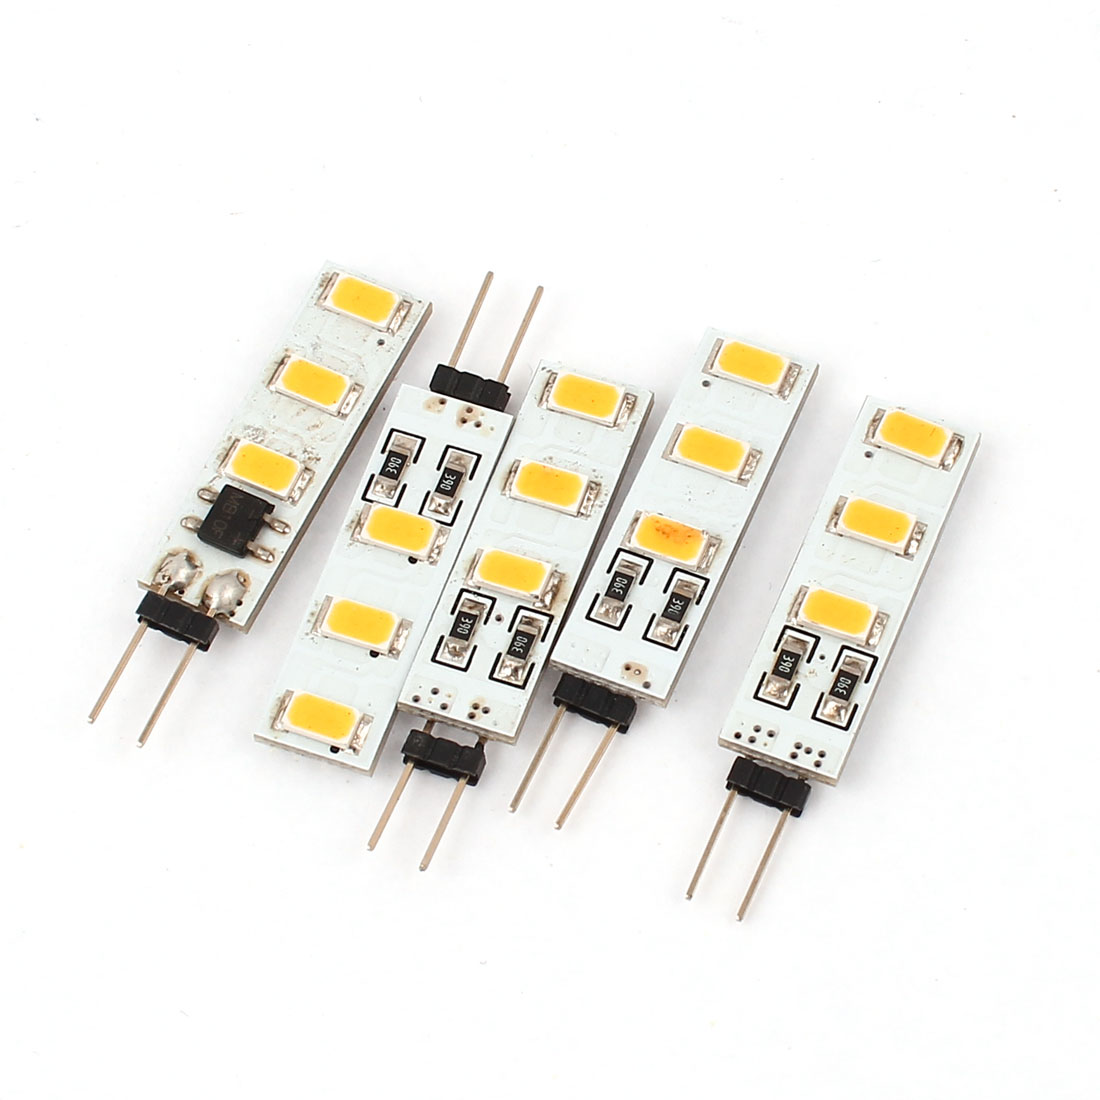 5pcs 80-100LM 360 Degree G4 5630 SMD 6 LED Cabinet Light Bulb Lamp Warm White